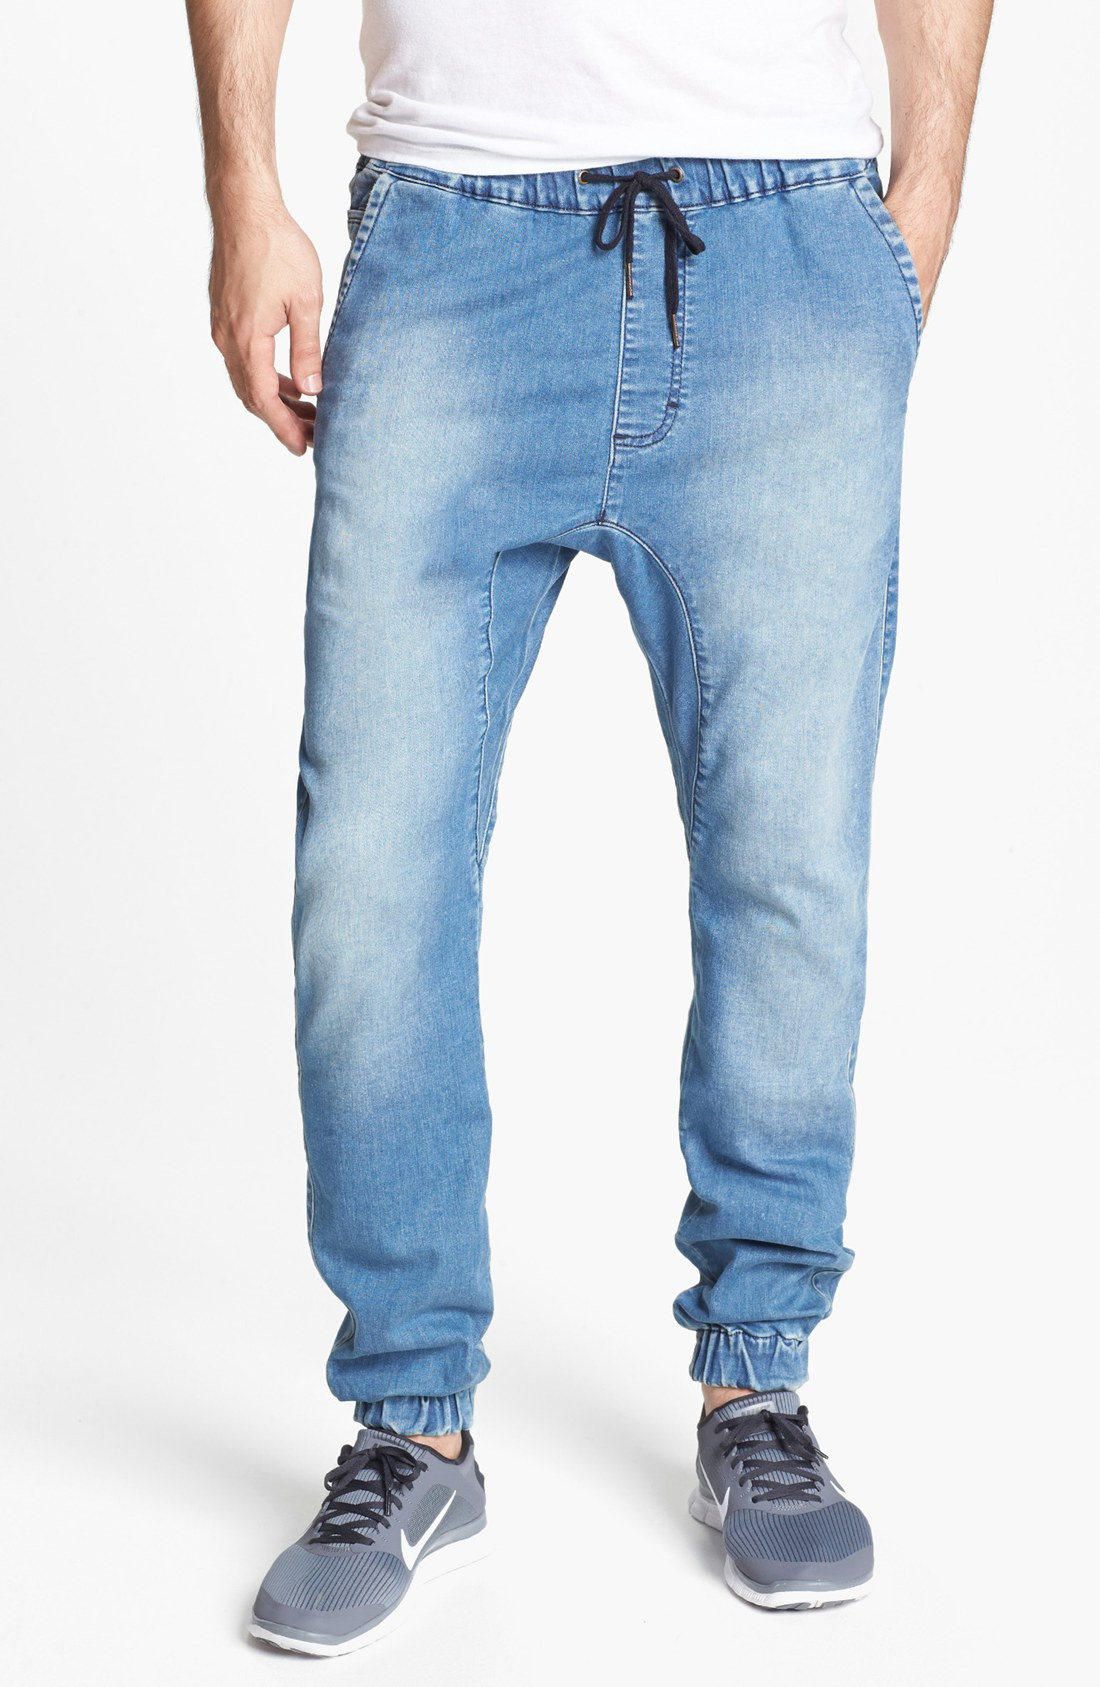 Jeans by AnarchyState Made from power stretch denim for comfort and fit Super skinny fit. Designed to fit tight to the body Reinforced seams for added strength Quality cotton twill View full product details.